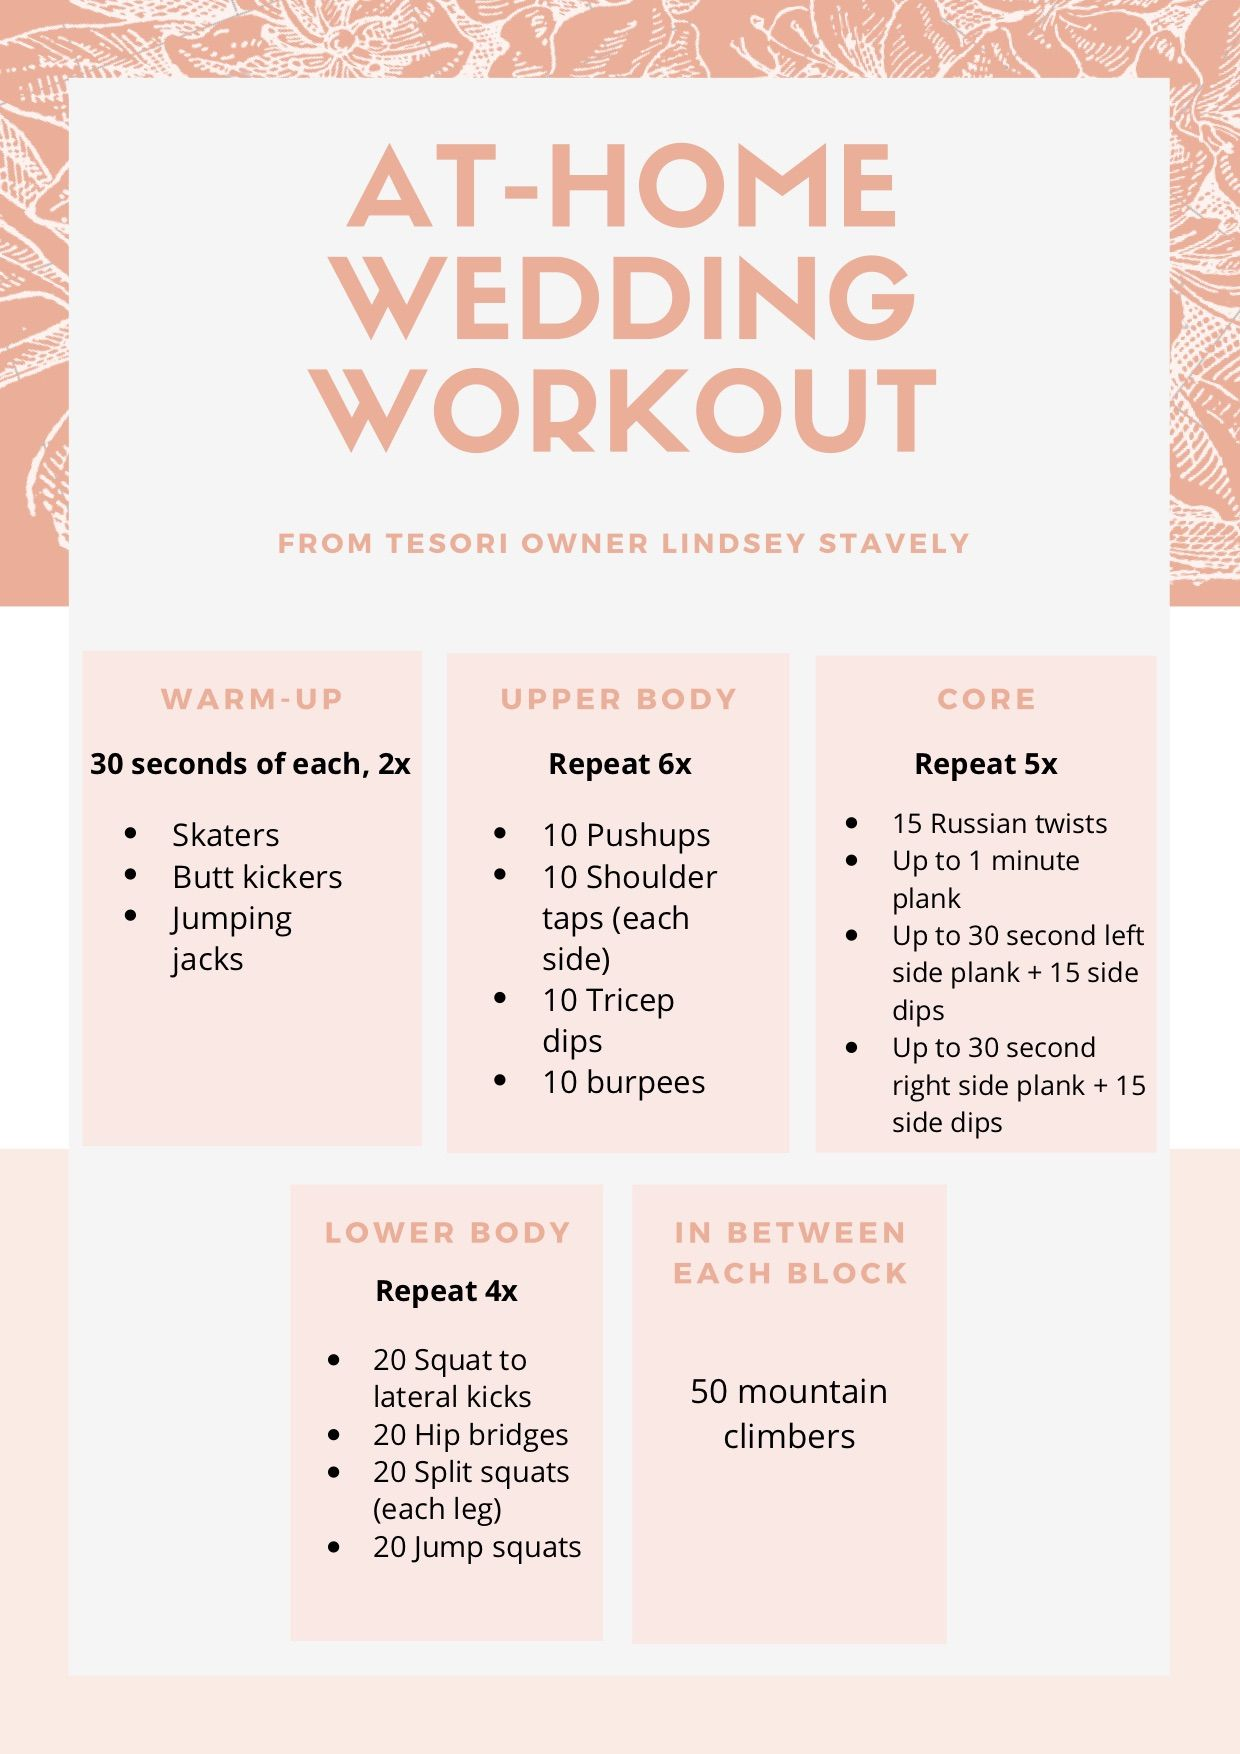 At Home Wedding Workout In 2020 Wedding Workout Workout Home Wedding